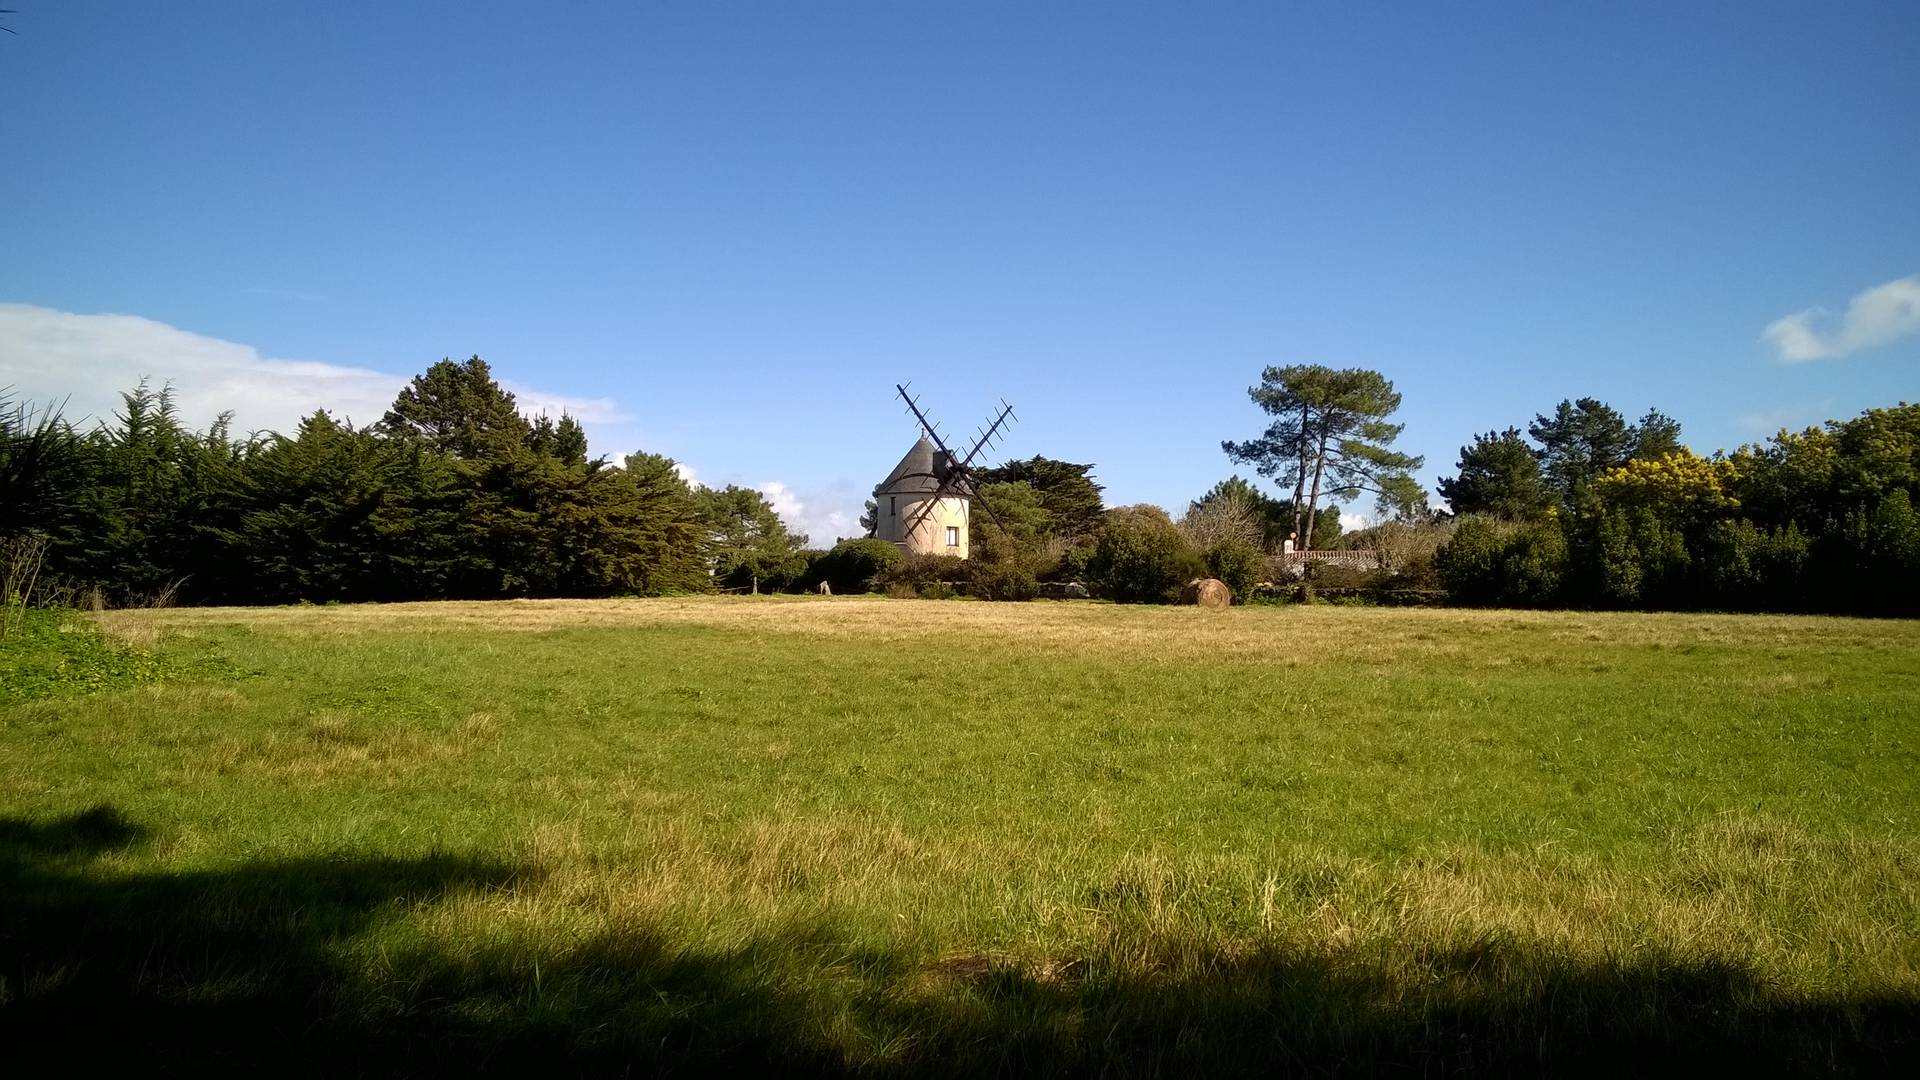 The mill at Le Calvaire, Ile d'Yeu